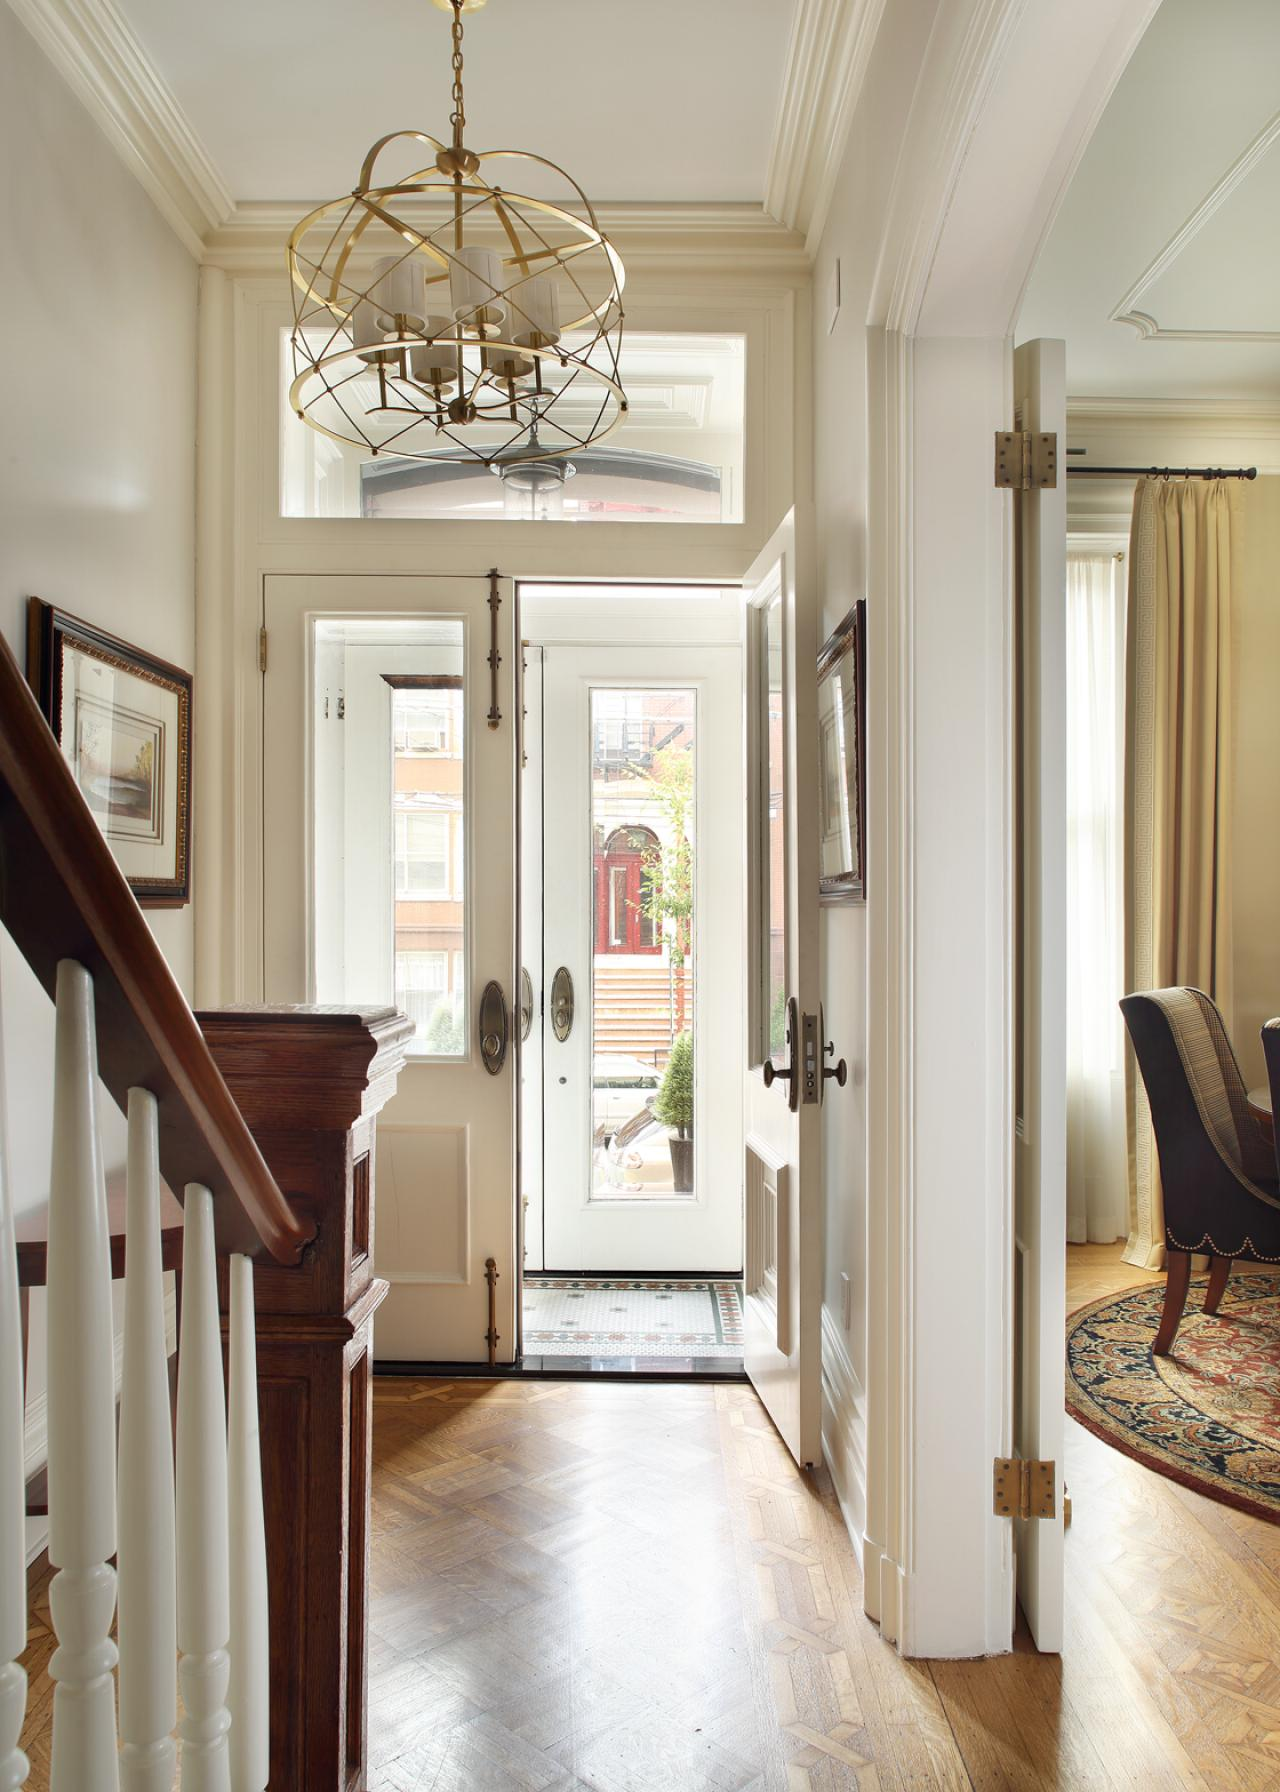 Foyer Room Nyc : White traditional brownstone foyer with gold chandelier hgtv